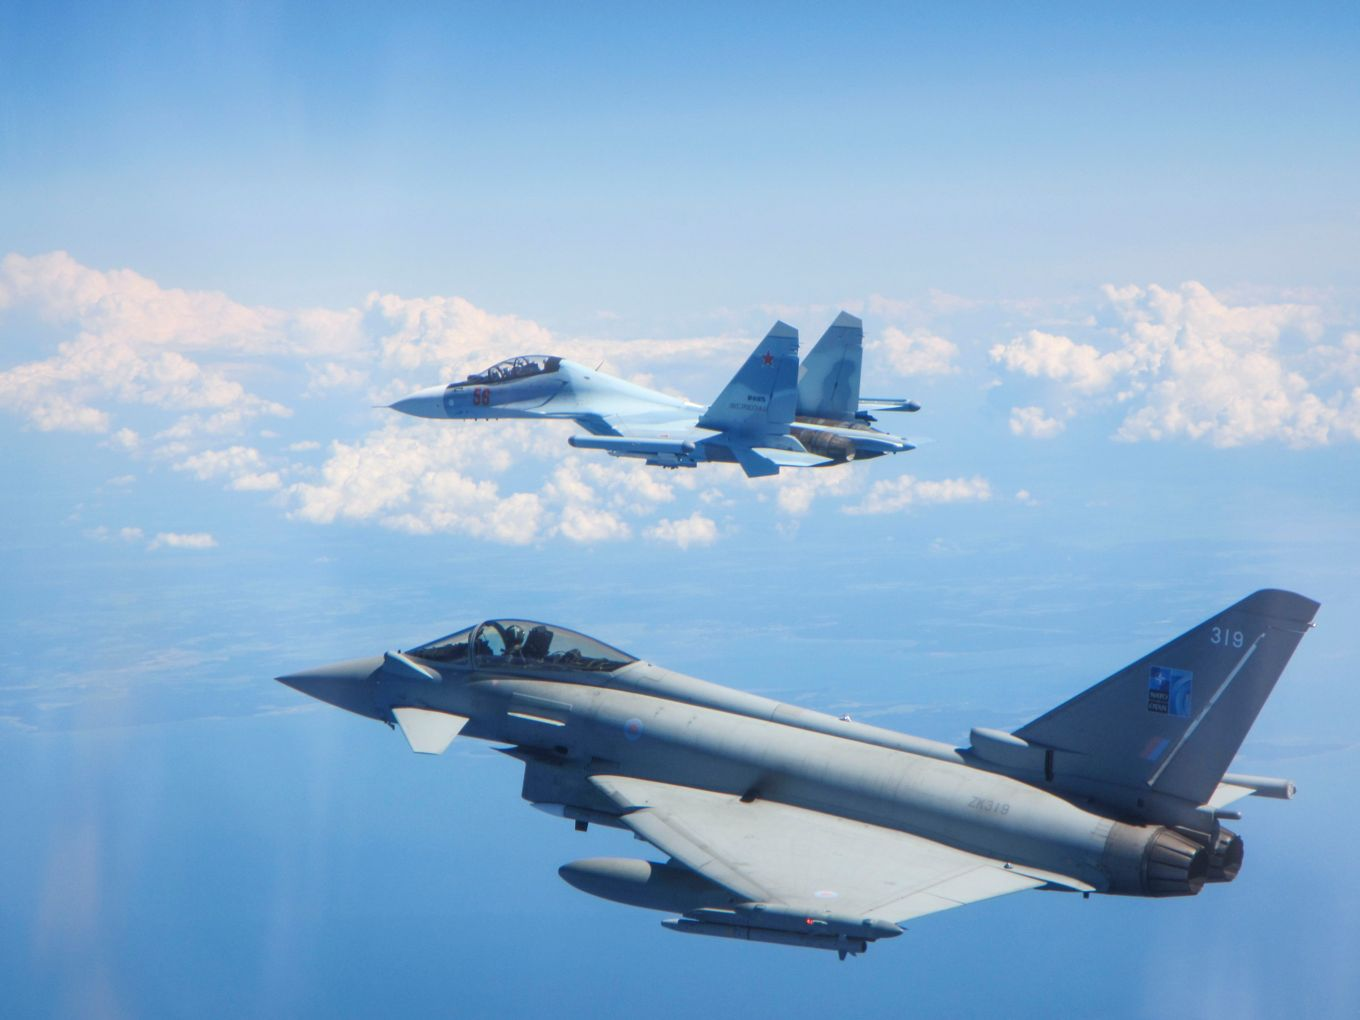 British Royal Air Force Typhoon fighter jets operating from Ämari Air Base in Estonia were scrambled June 15 to intercept two unknown contacts transiting north from Kaliningrad towards Estonian and Finnish airspace. The aircraft were intercepted and identified as a Russian Su-30 Flanker fighter and an Ilyushin IL-76 Candid transport aircraft. (British Ministry of Defence)